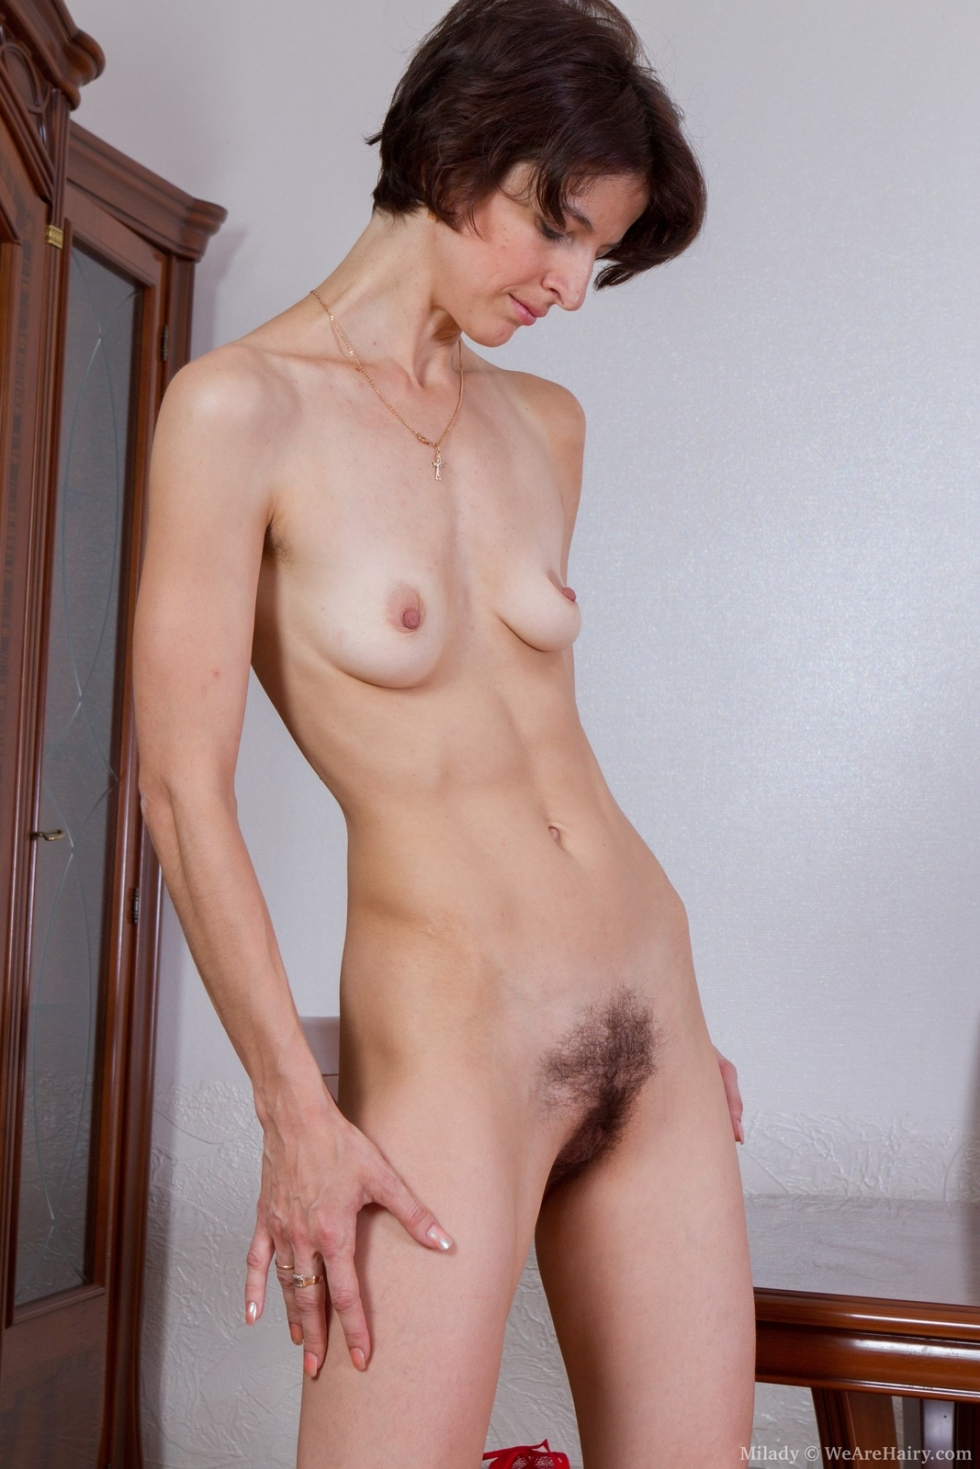 Long hair milf porn apologise, too